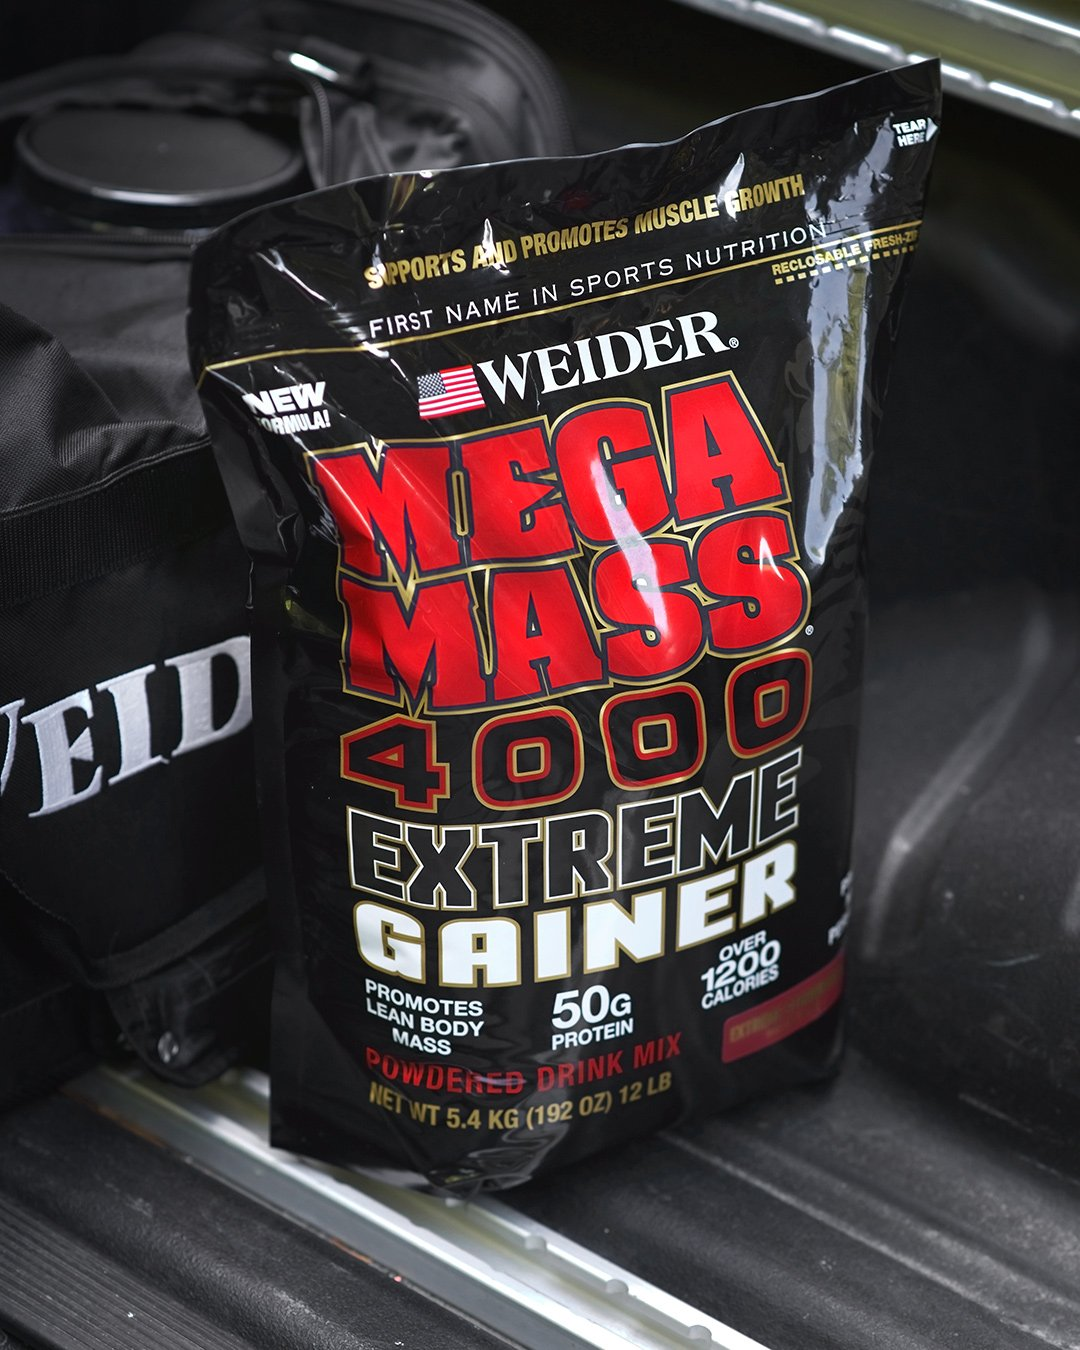 Weider Megamass 4000 Extreme Gainer - Our Best Selling Gainers - 50 Grams of Protein per Serving - Over 1,200 Calories - Over 250 Grams of Carbs by Weider (Image #5)